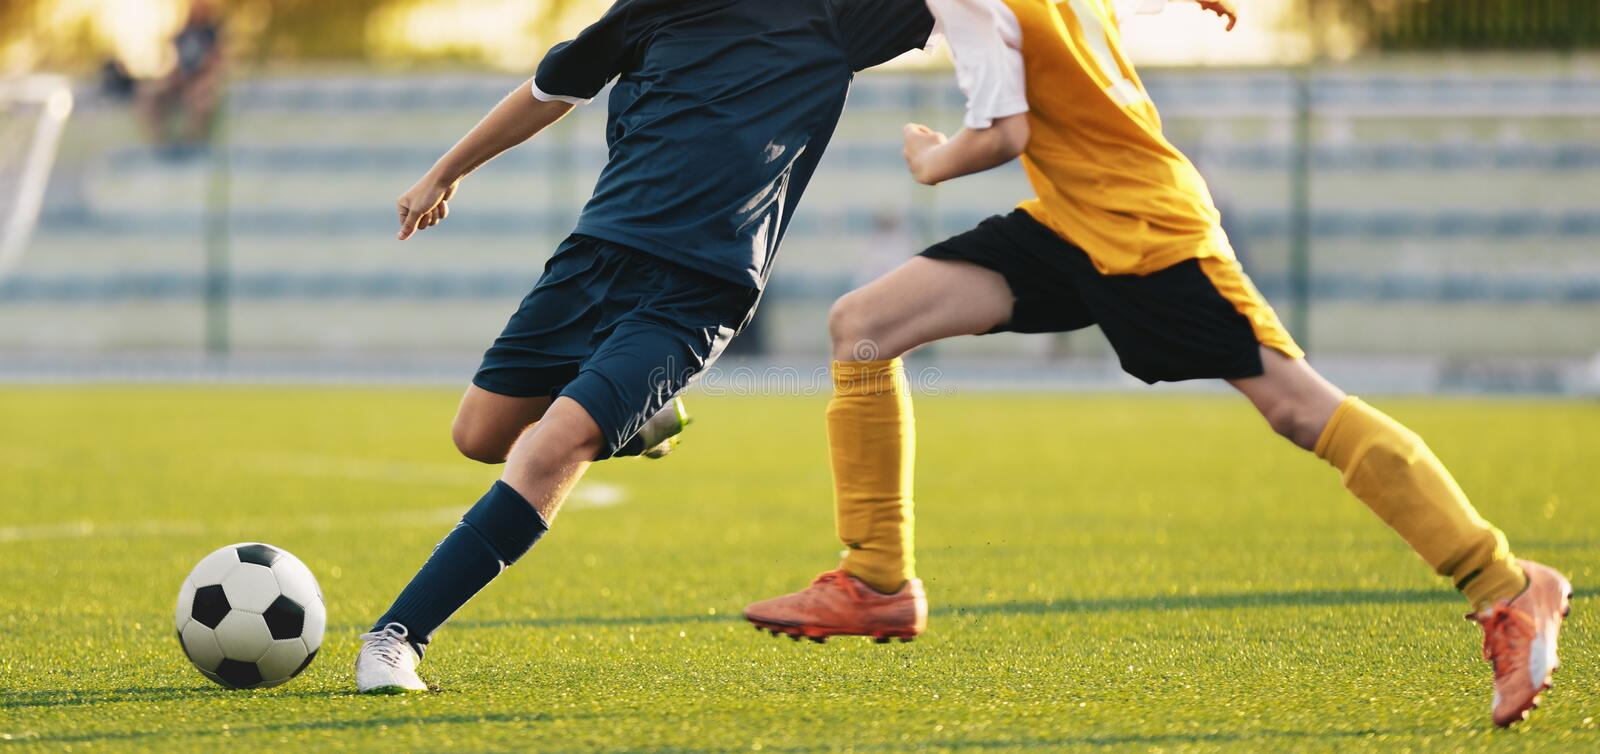 Soccer Football Players Compete at the Stadium. Two Footballers Running and Kicking Soccer Ball. Football Match Background. Football Tournament Game for Youth stock images